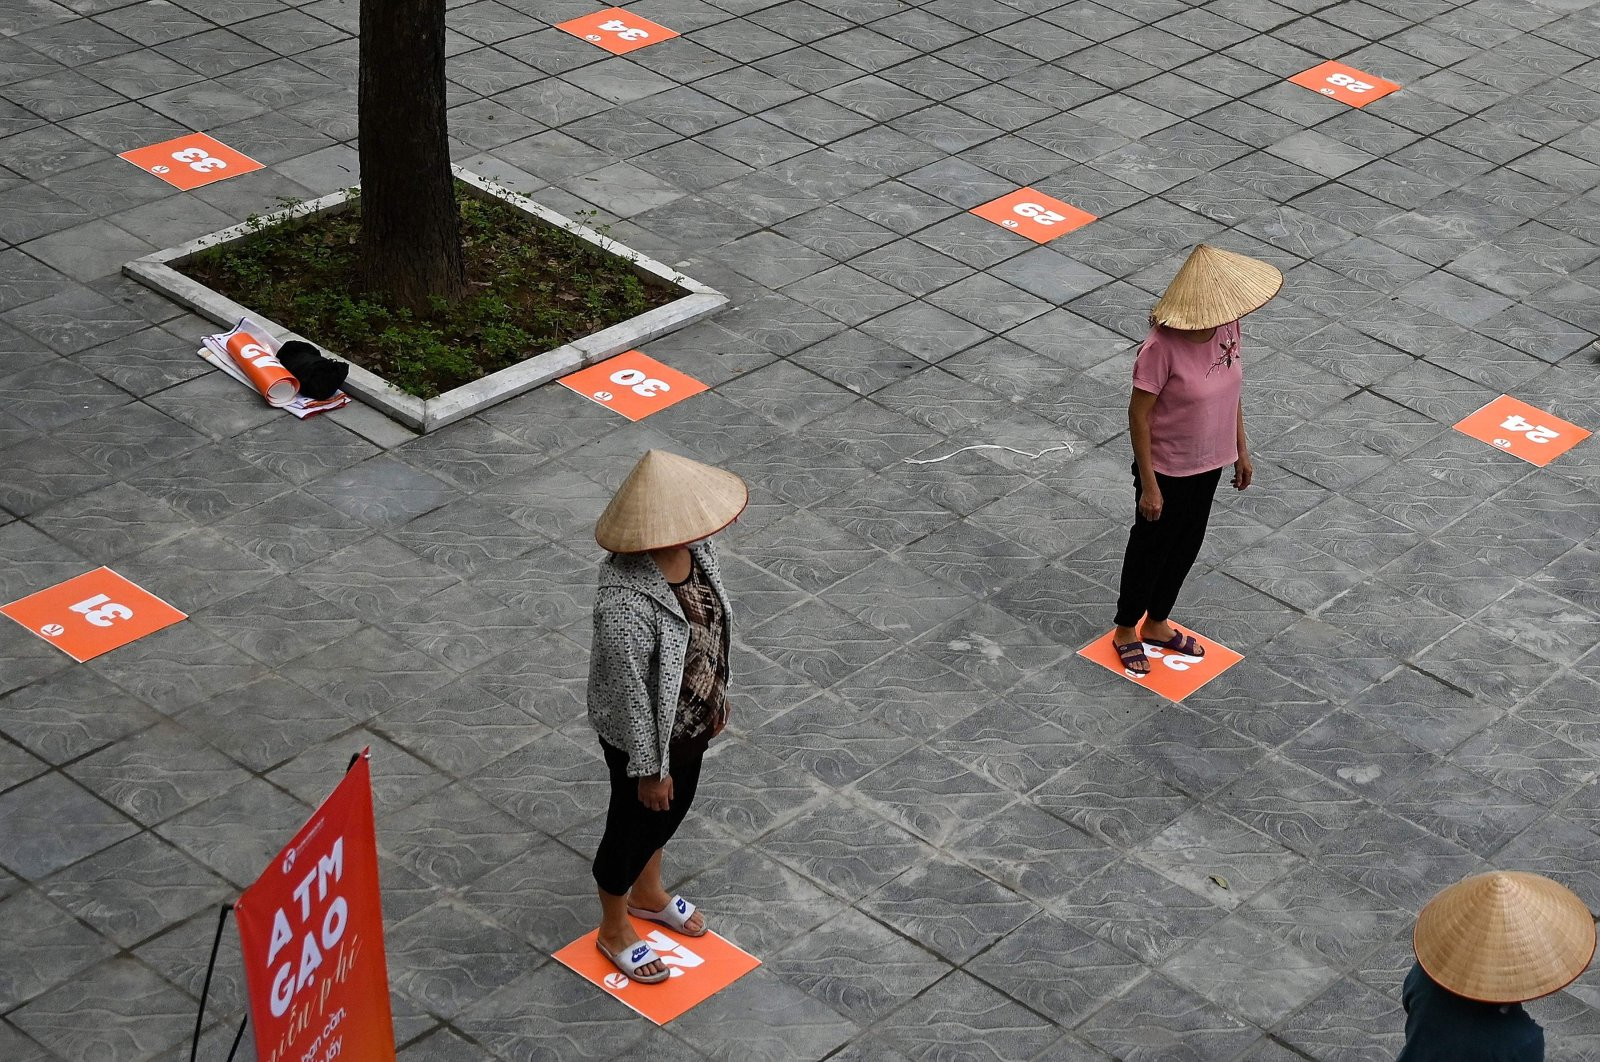 Residents wearing face masks practice social distancing as they wait in a queue for free rice, Hanoi, April 11, 2020. (AFP Photo)